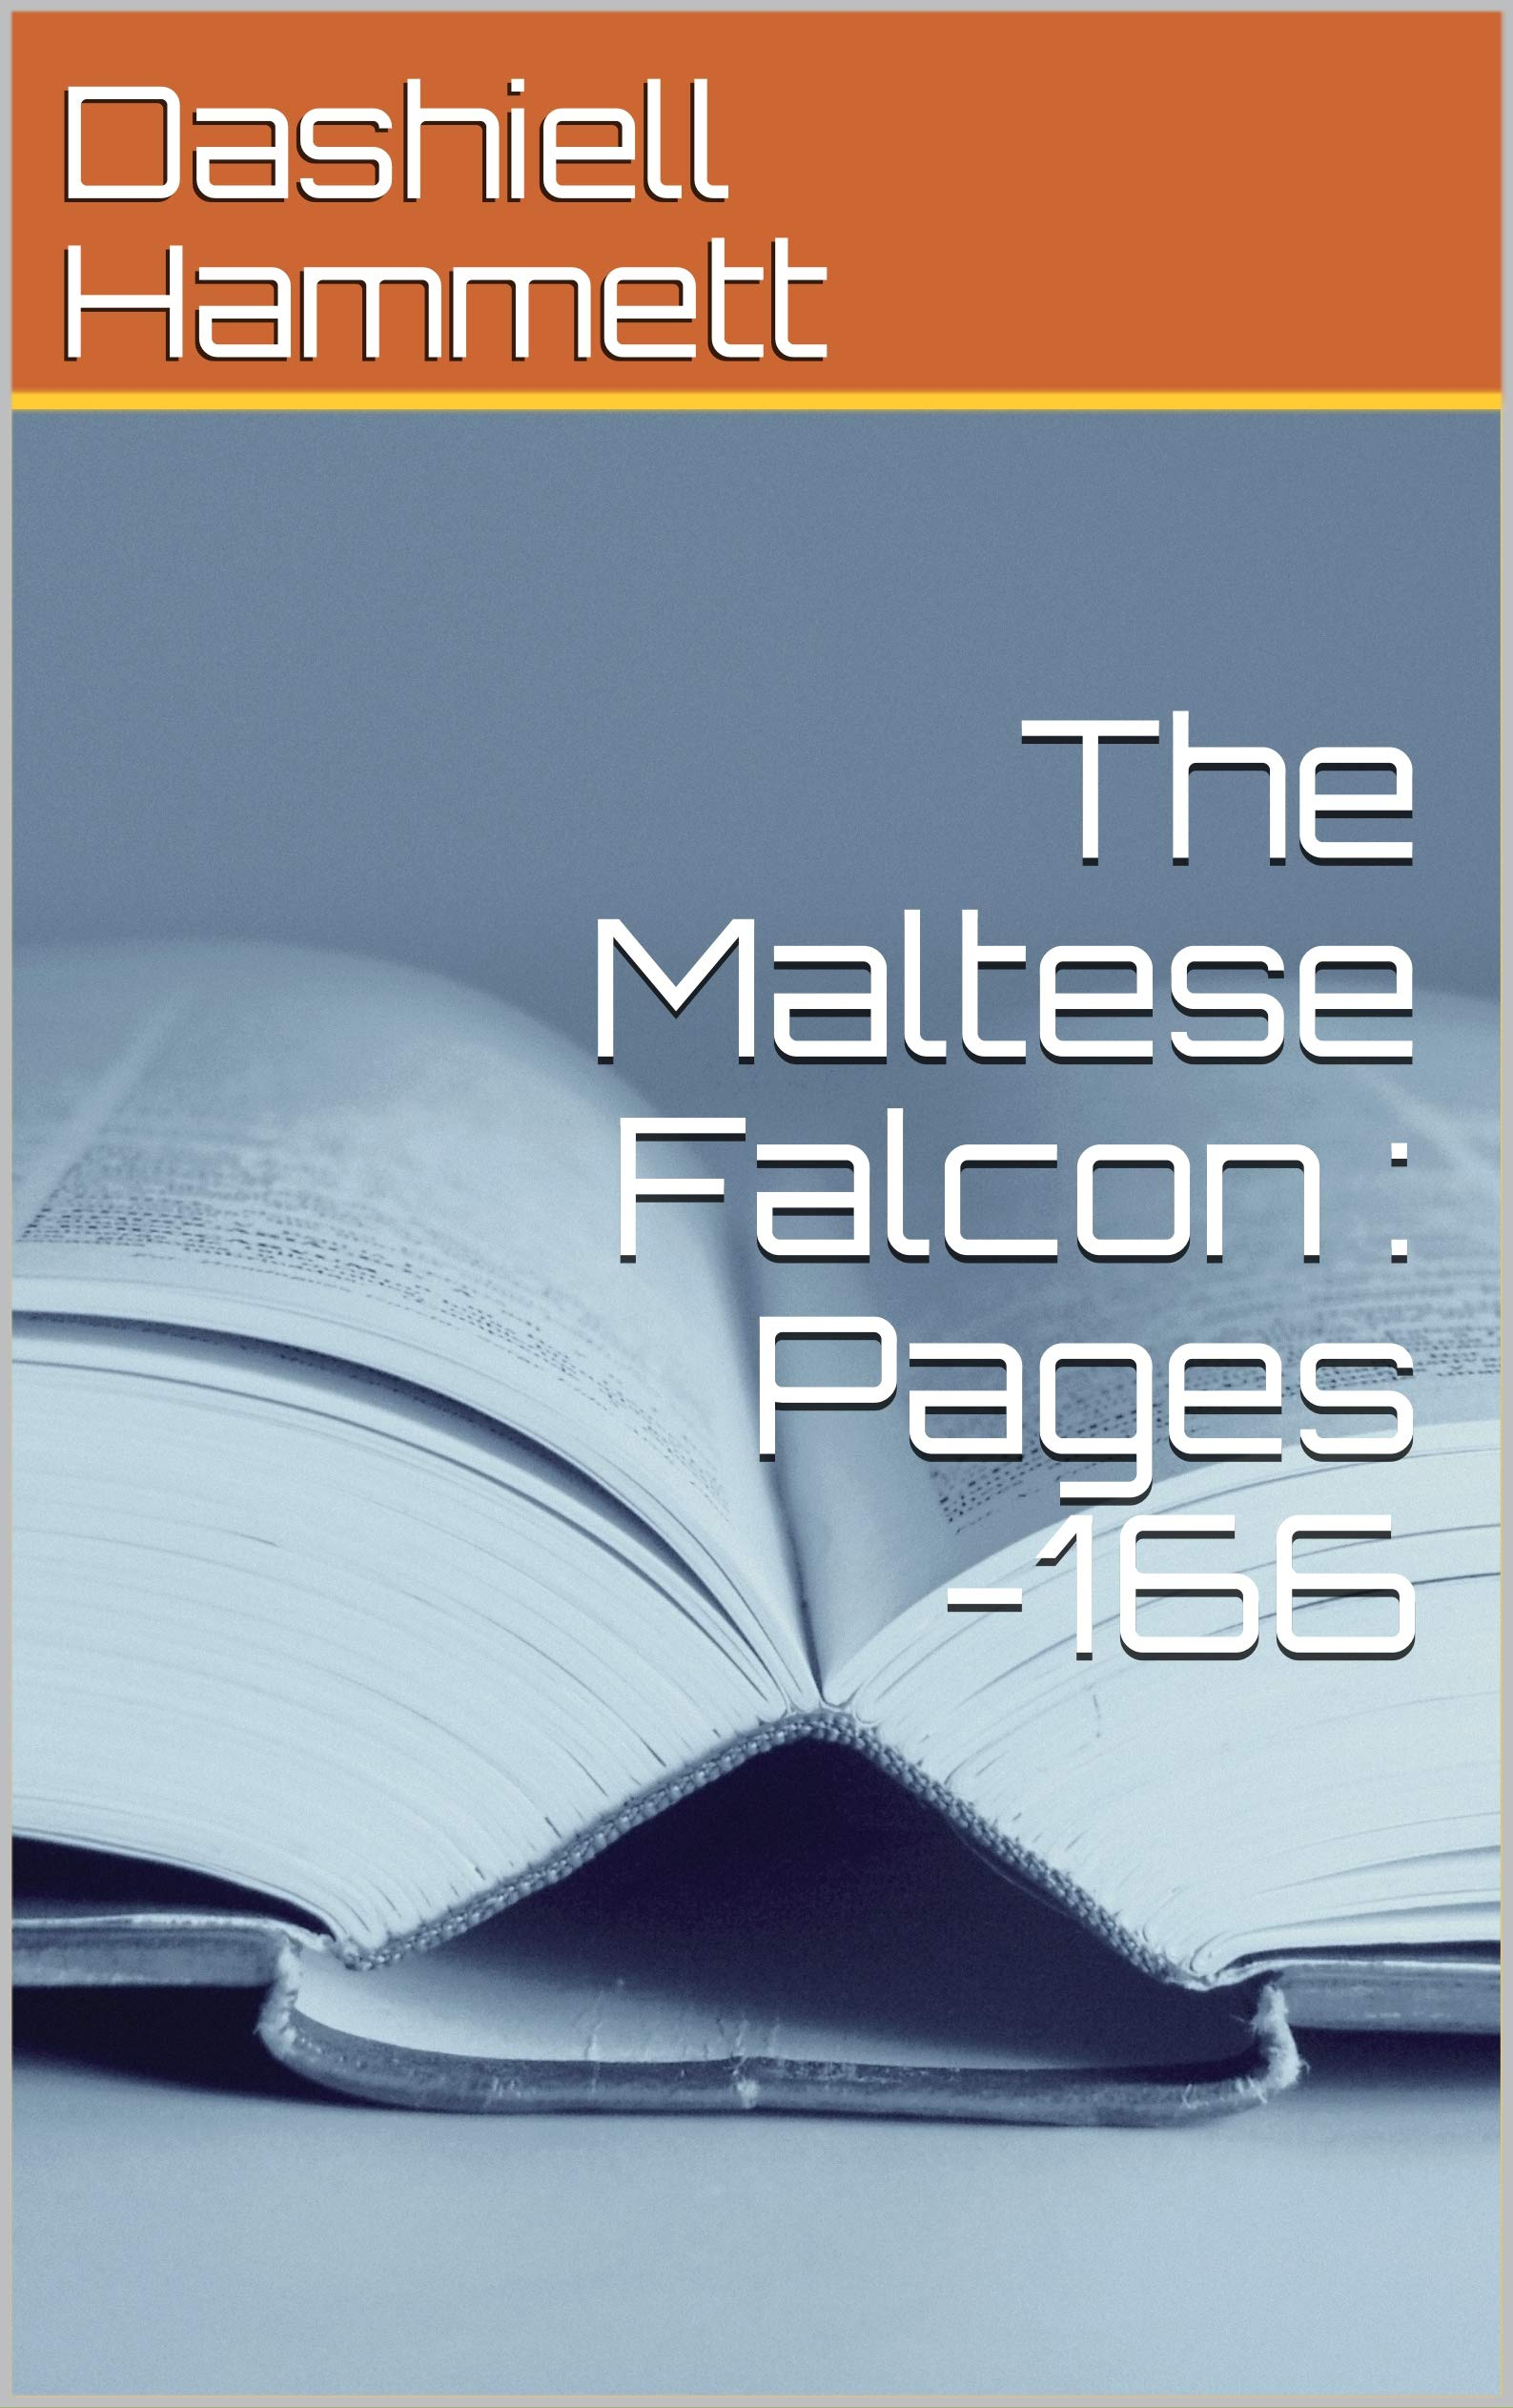 The Maltese Falcon : Pages -166